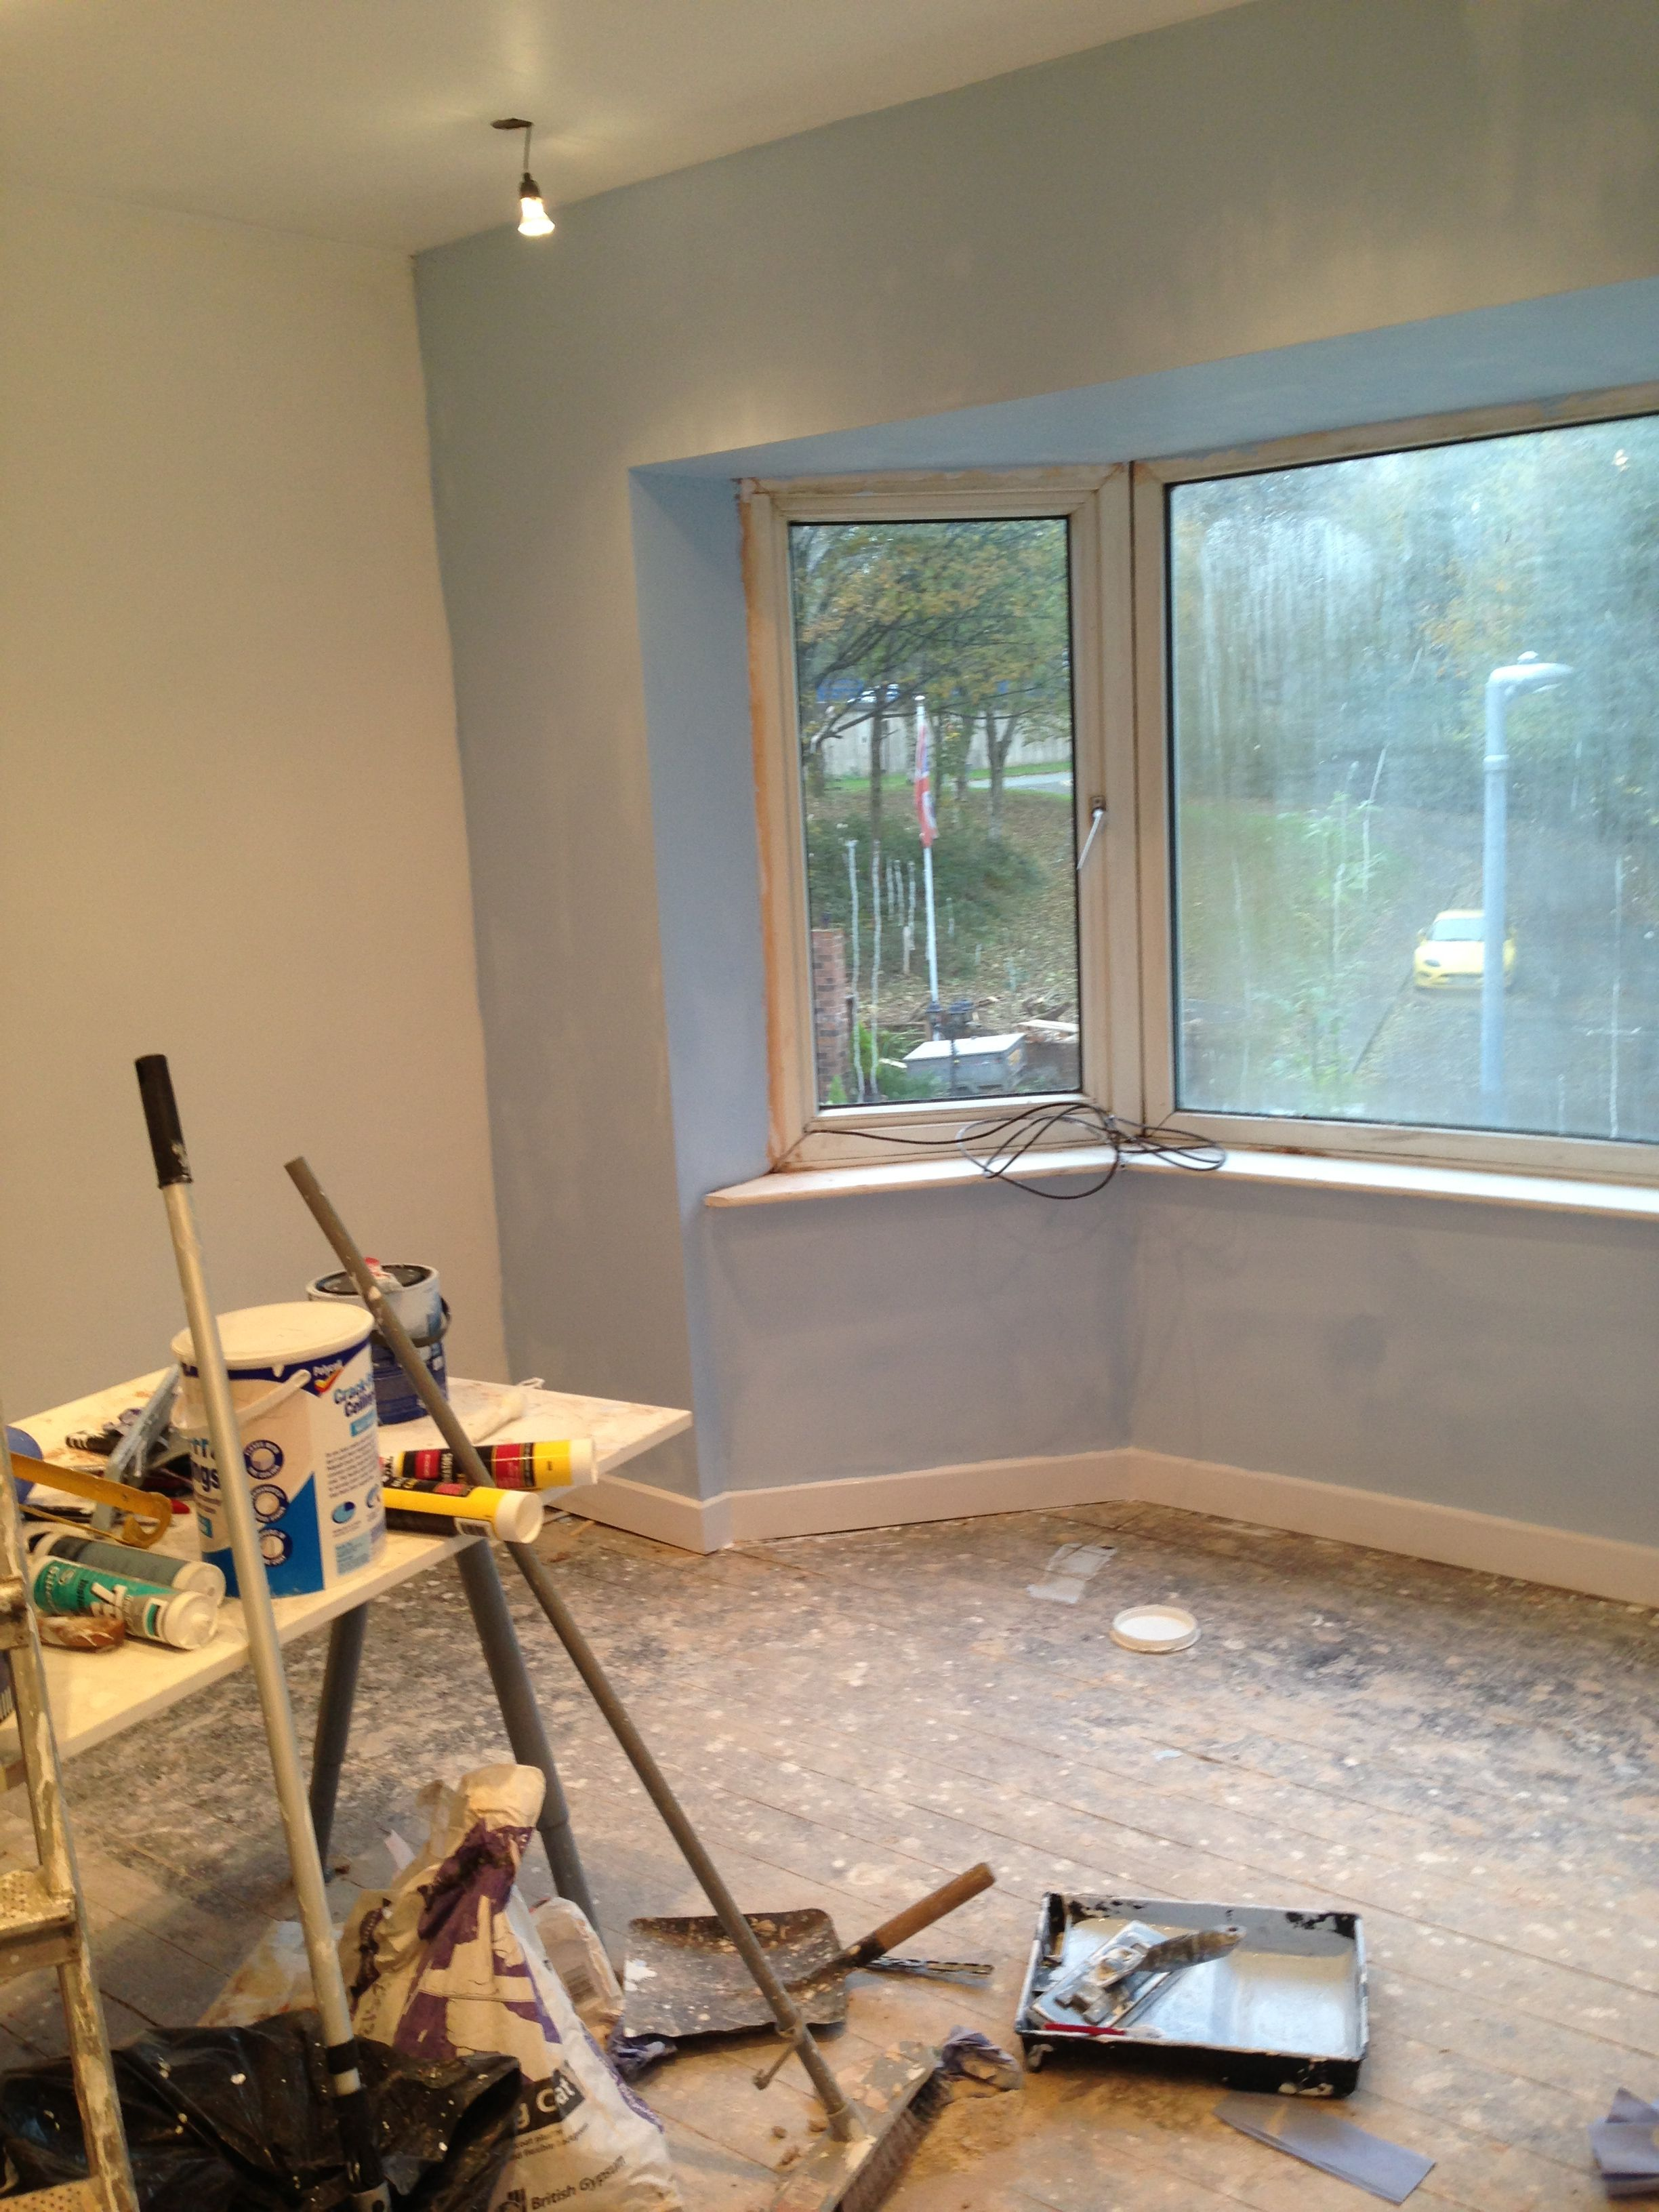 Dulux Mineral Mist In The Bay Frosted Dawn For The Walls